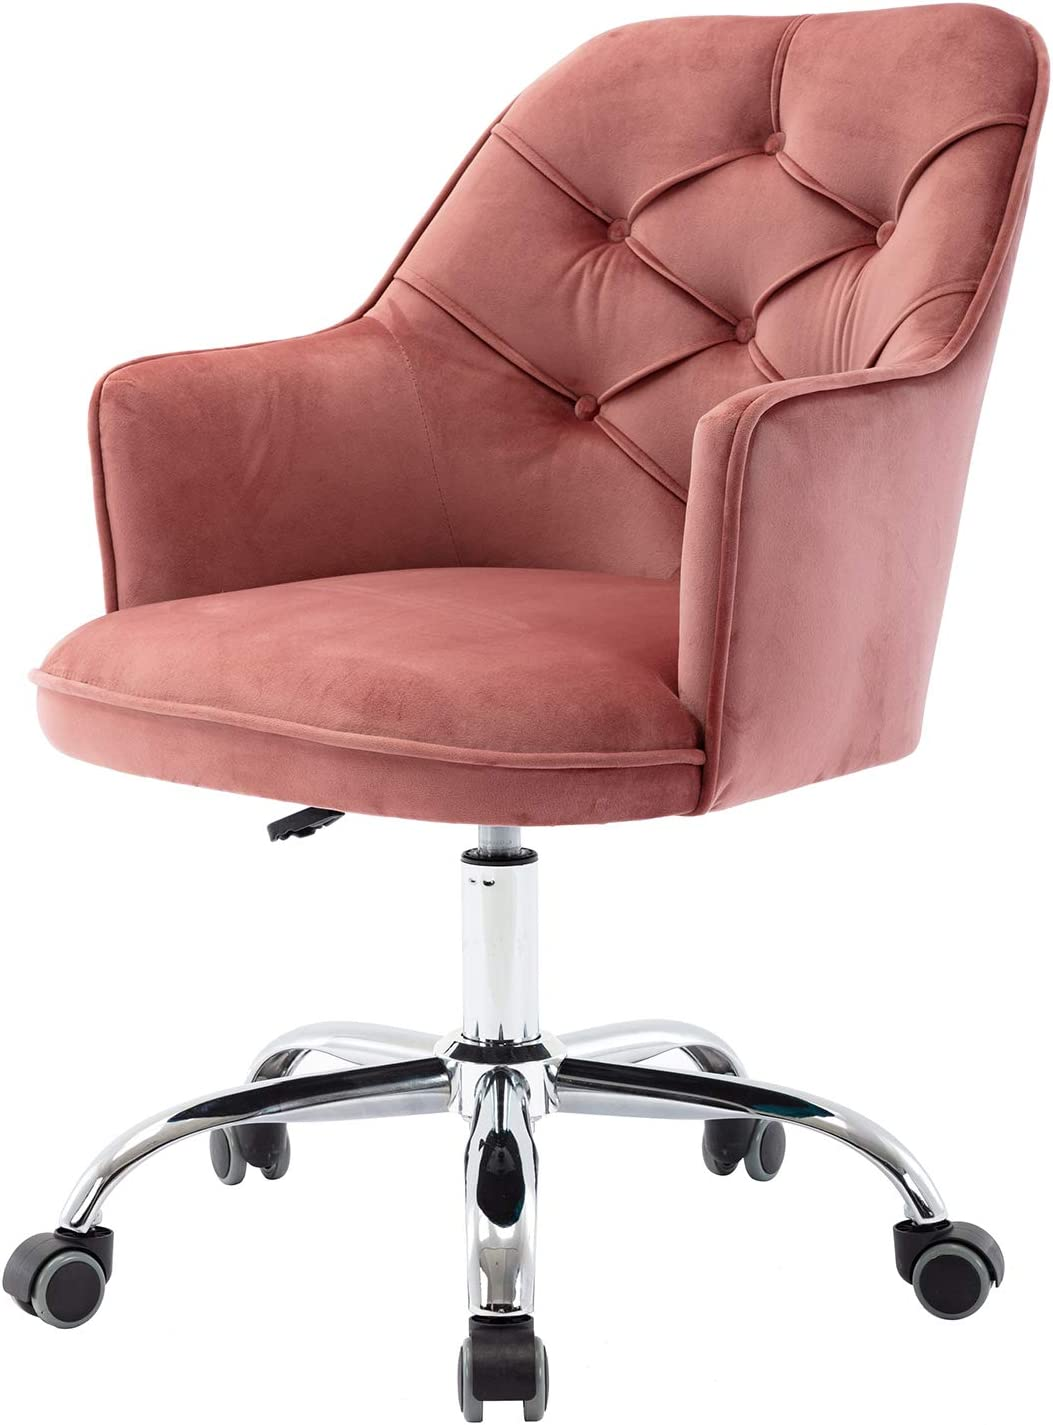 Henf Velvet Accent Chair, Living Room 360 Swivel Shell Chairs Velvet Home Office Desk Chair Modern Tufted Vanity Chair with Wheels for Bedroom (Warm Pink)